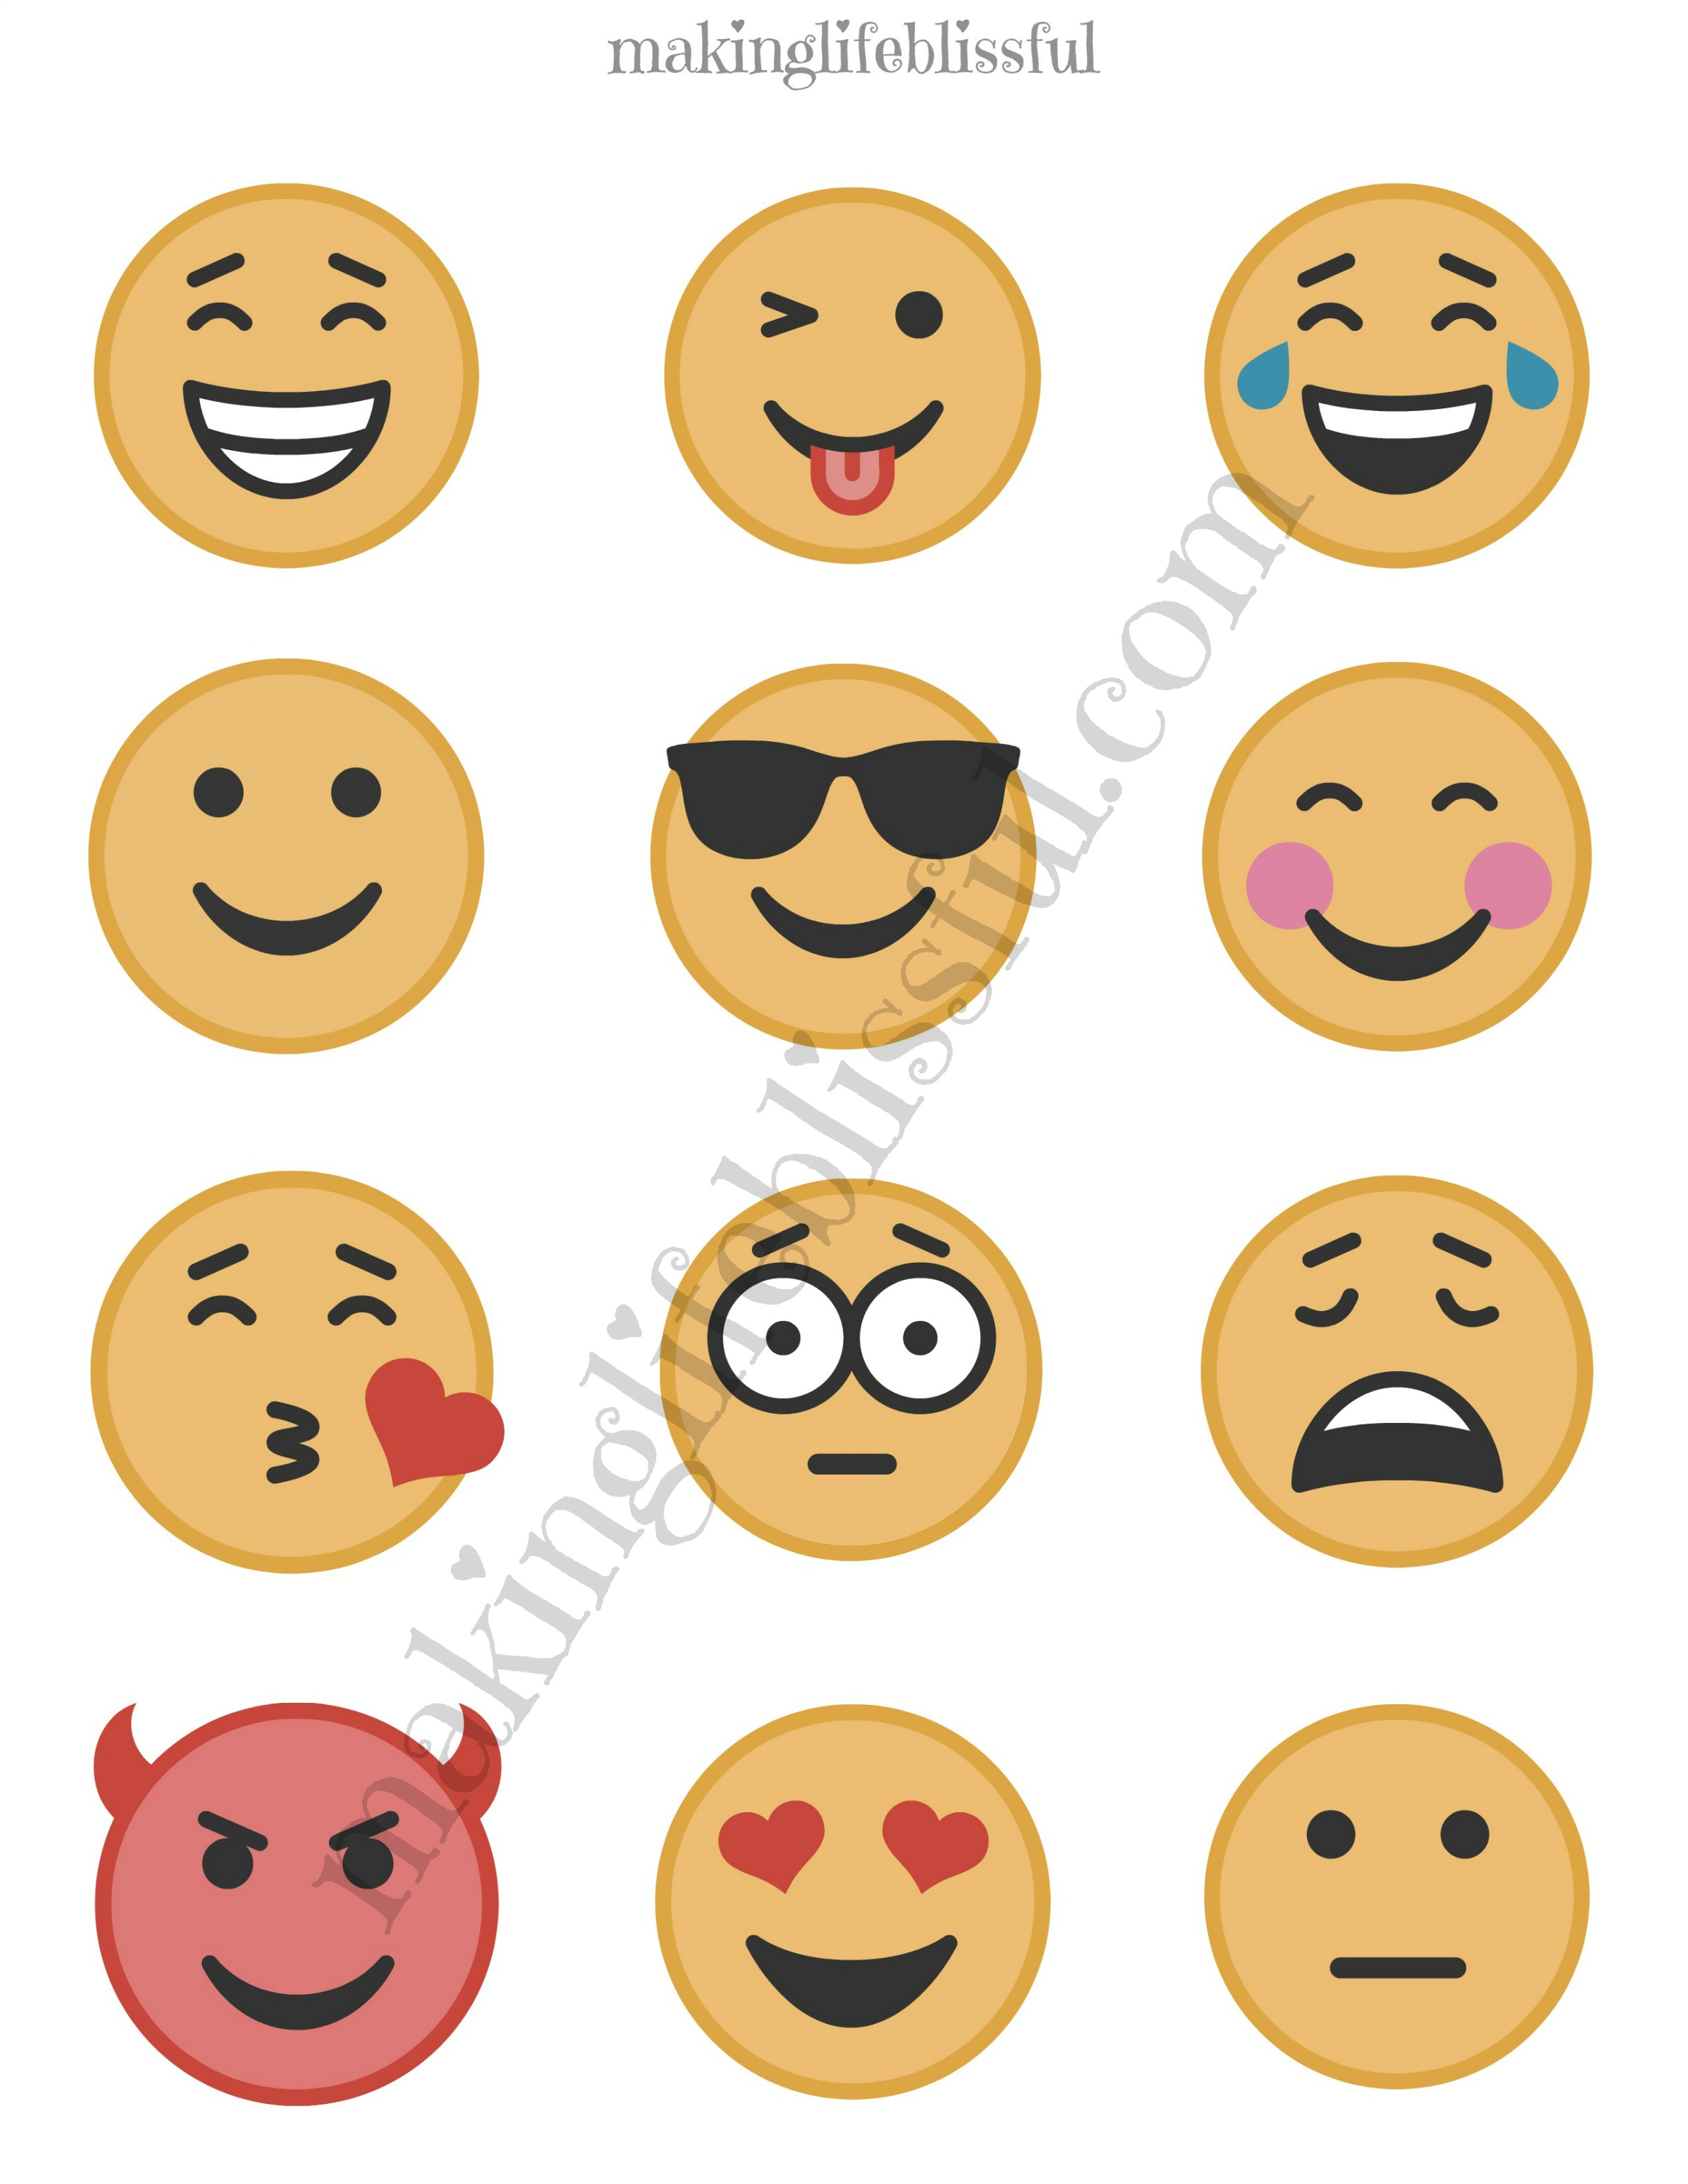 image about Emoji Feelings Printable named Totally free Emoji Social gathering Printables Creating Lifetime Blissful